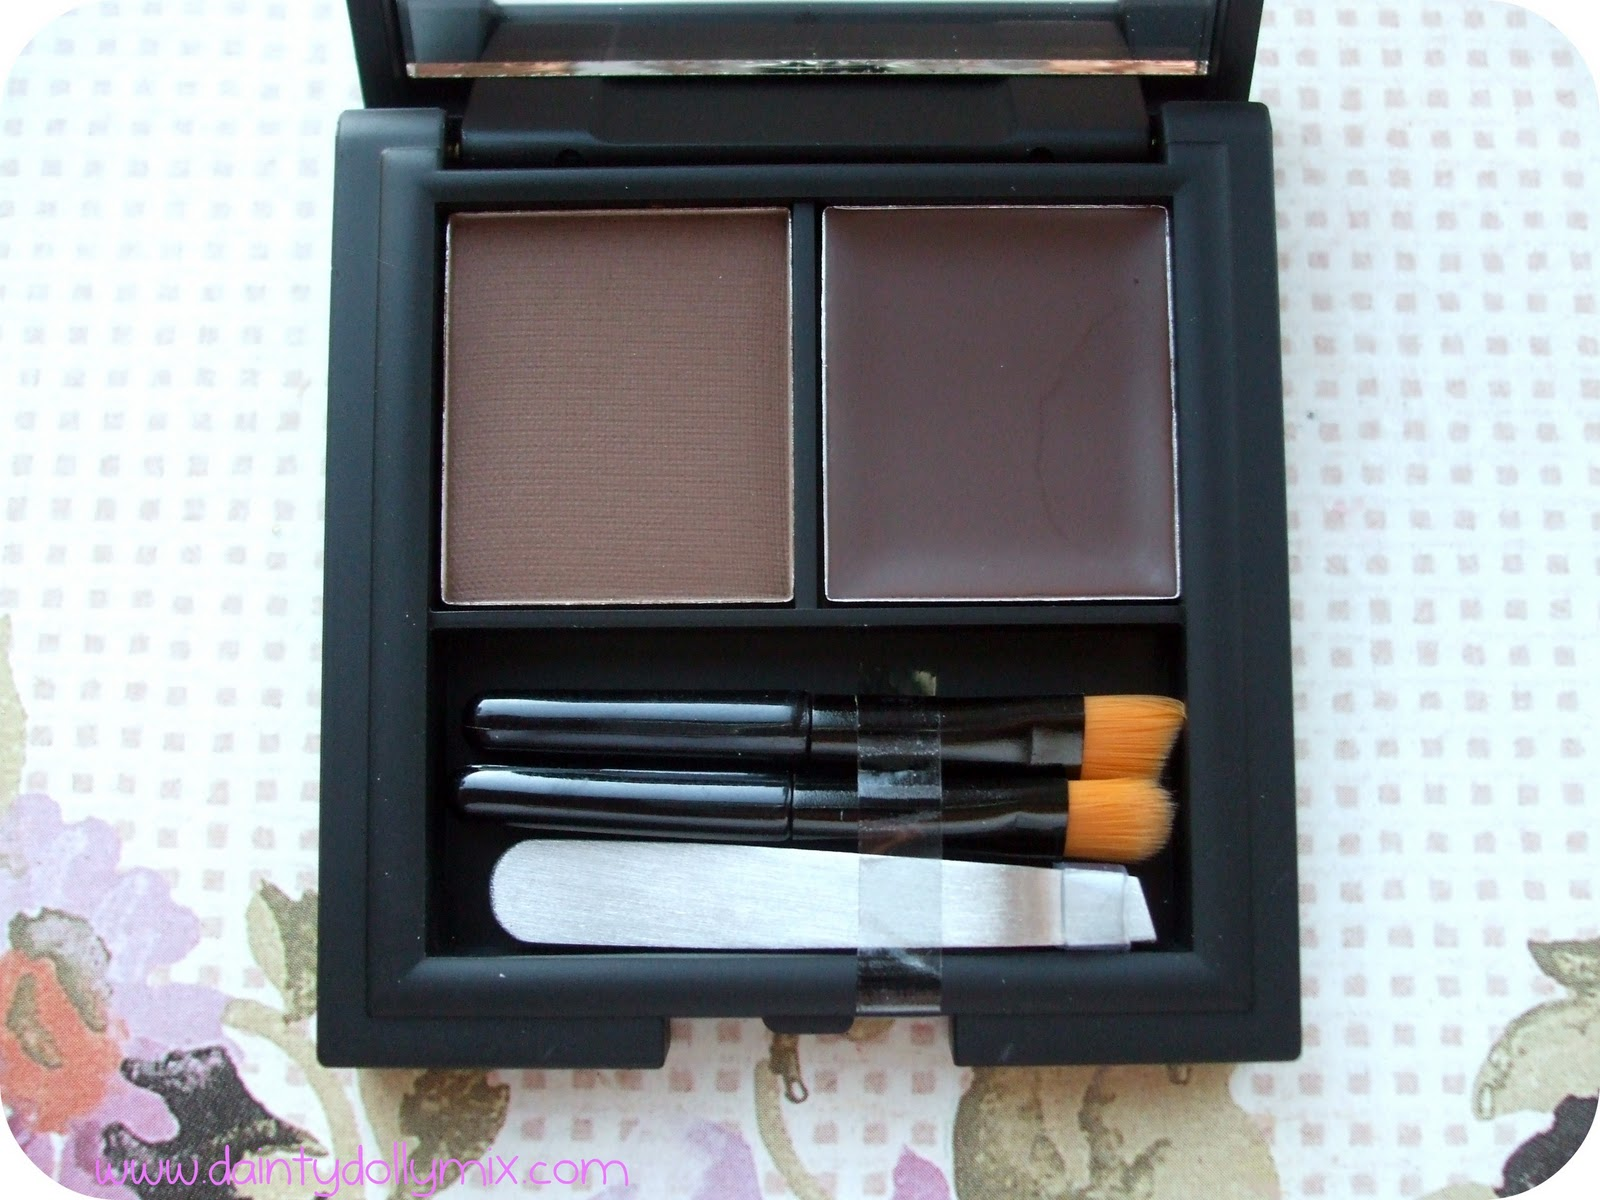 Dainty Dollymix UK Beauty Blog: Review: Sleek MakeUP Brow Kit